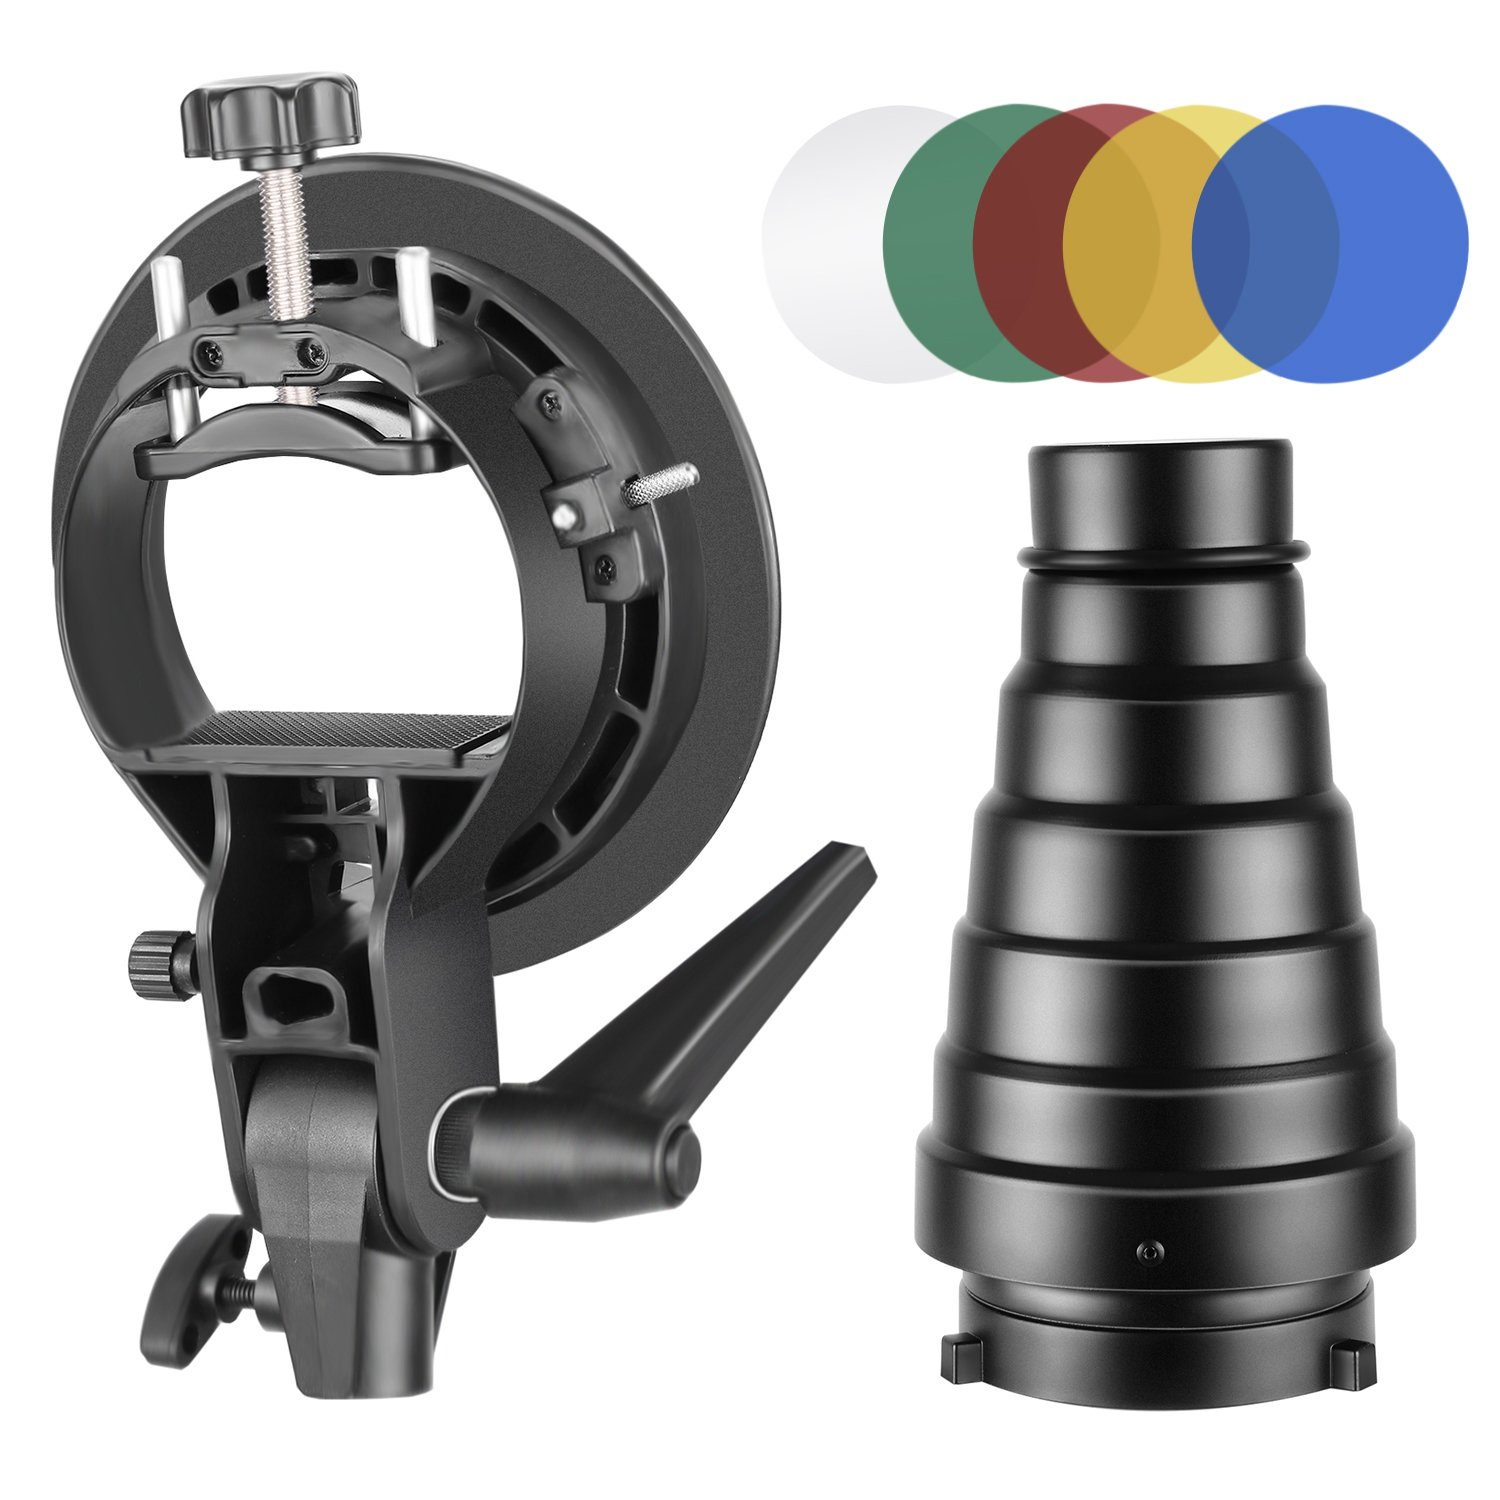 Neewer Photography S-Type Flash Bracket Holder and Conical Snoot Kit with Bowens Mount, Honeycomb Grid, 5 Pieces Color Gel Filters for Speedlite Flash Softbox Beauty Dish Reflector Umbrella by Neewer